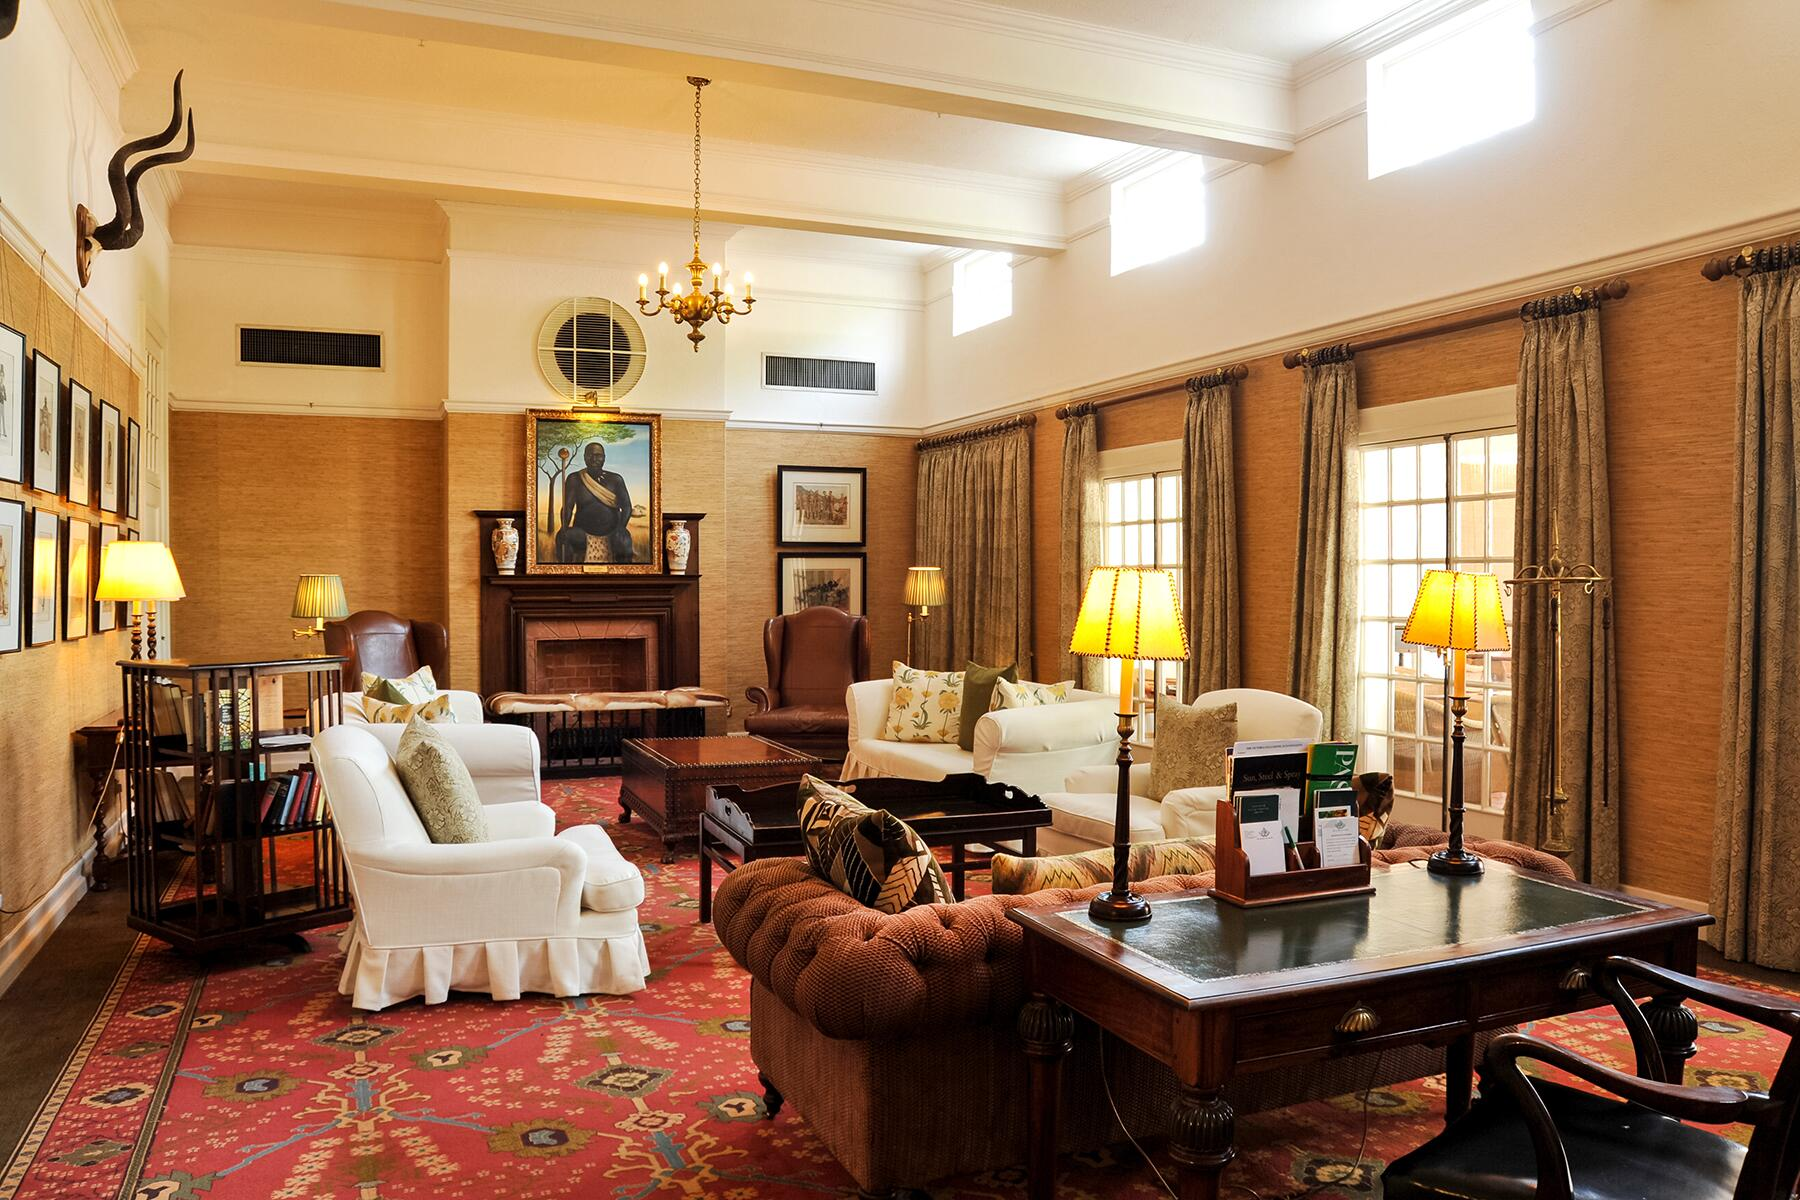 The Best Hotels in Africa